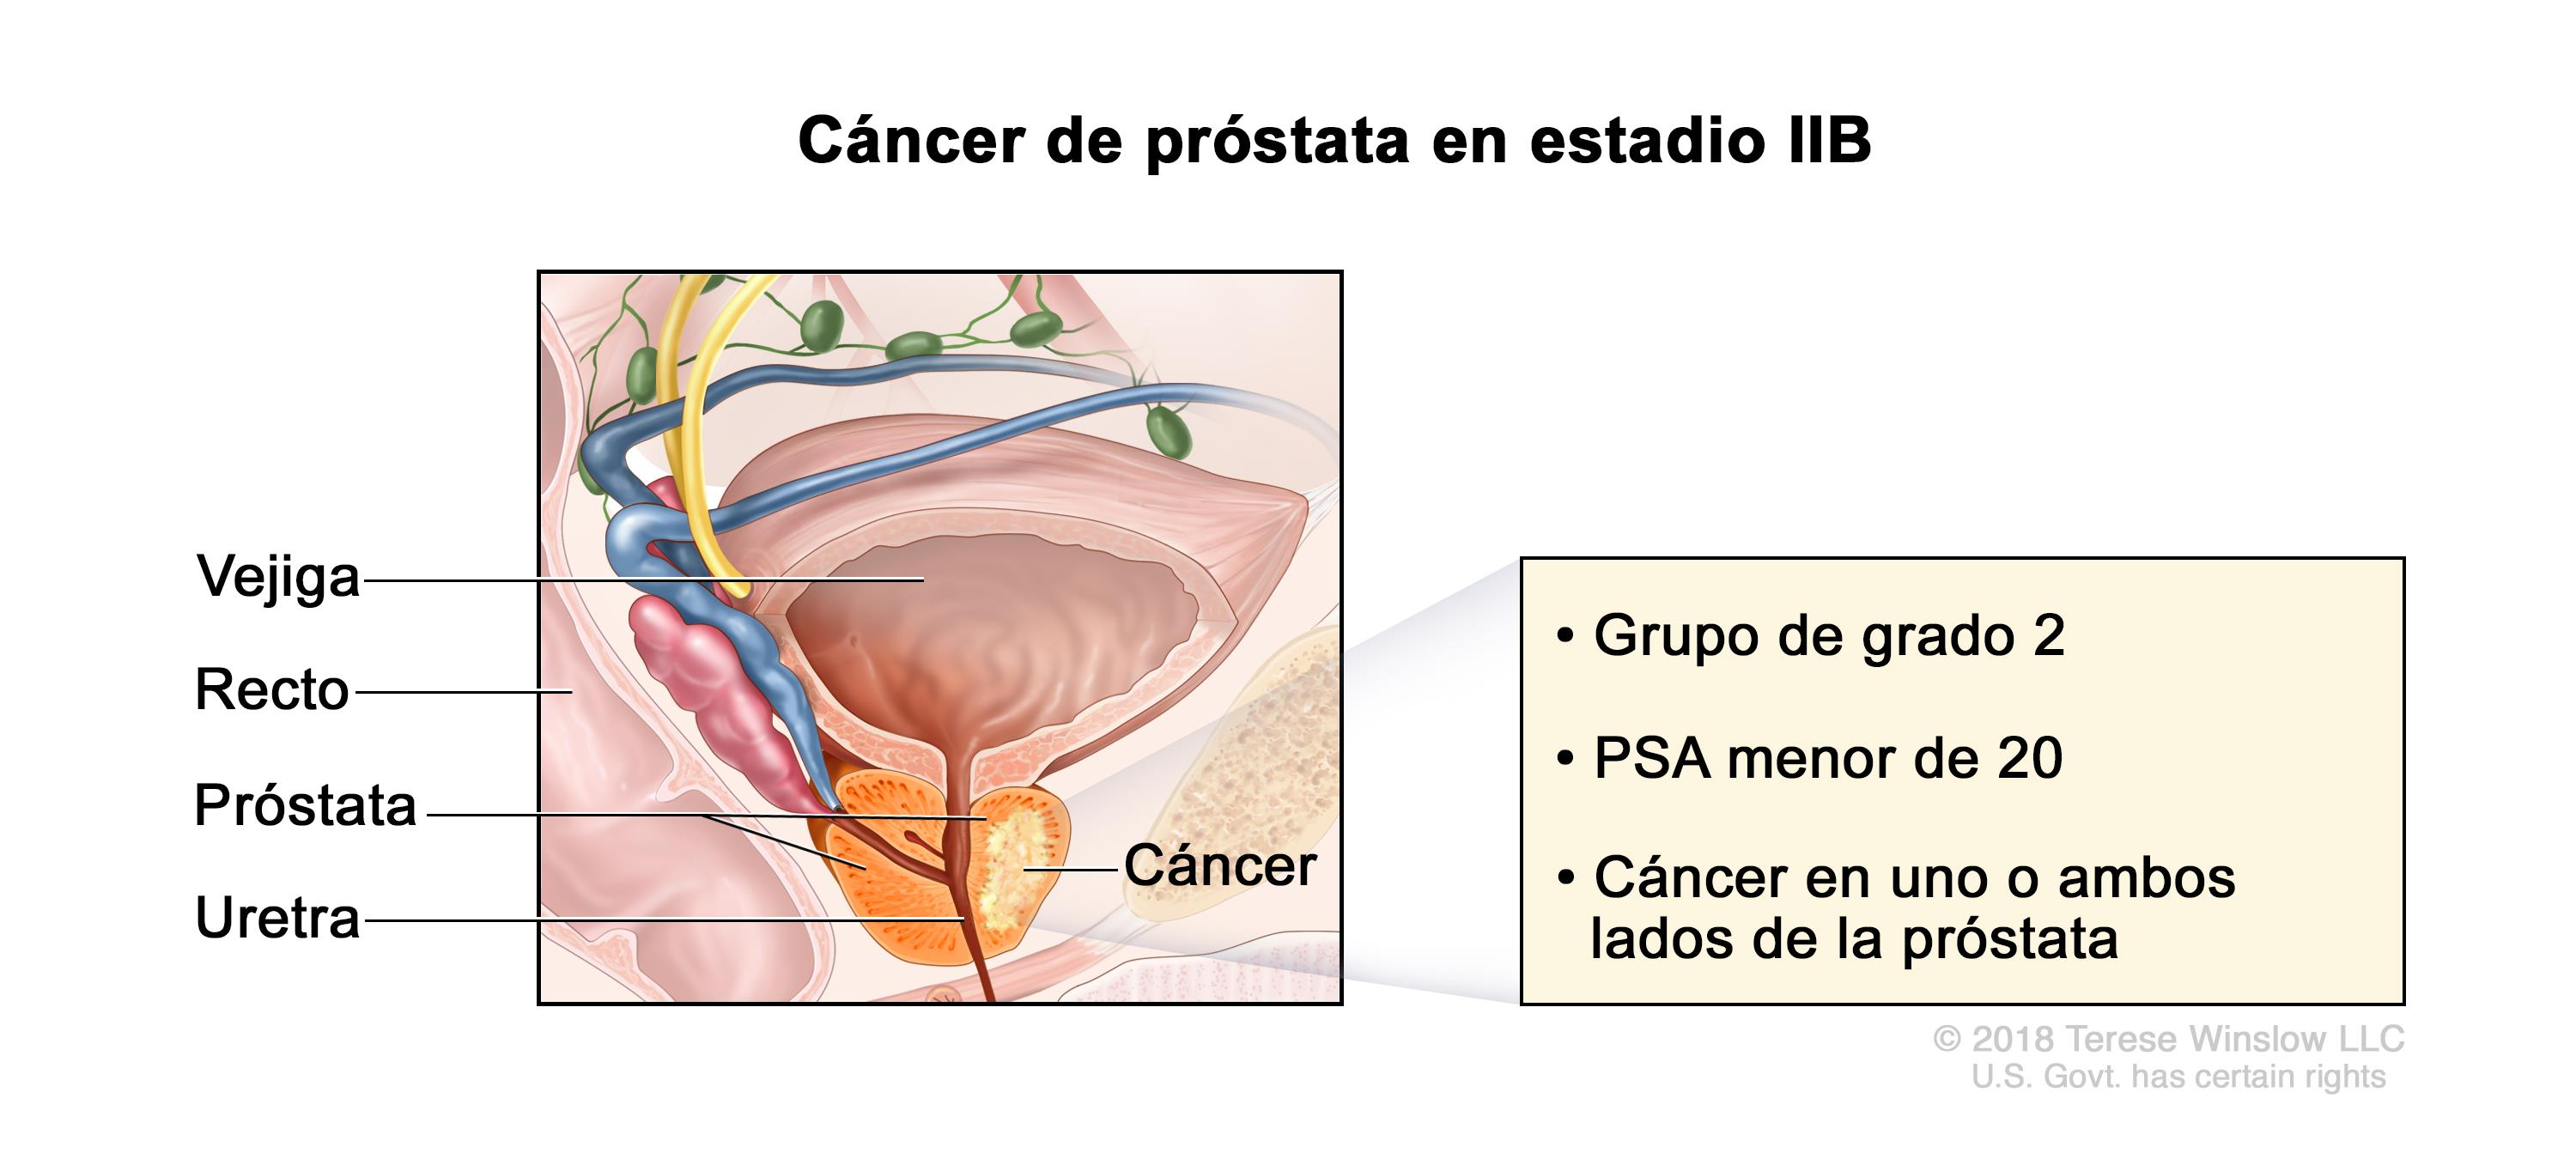 grado 4 cancer de prostata